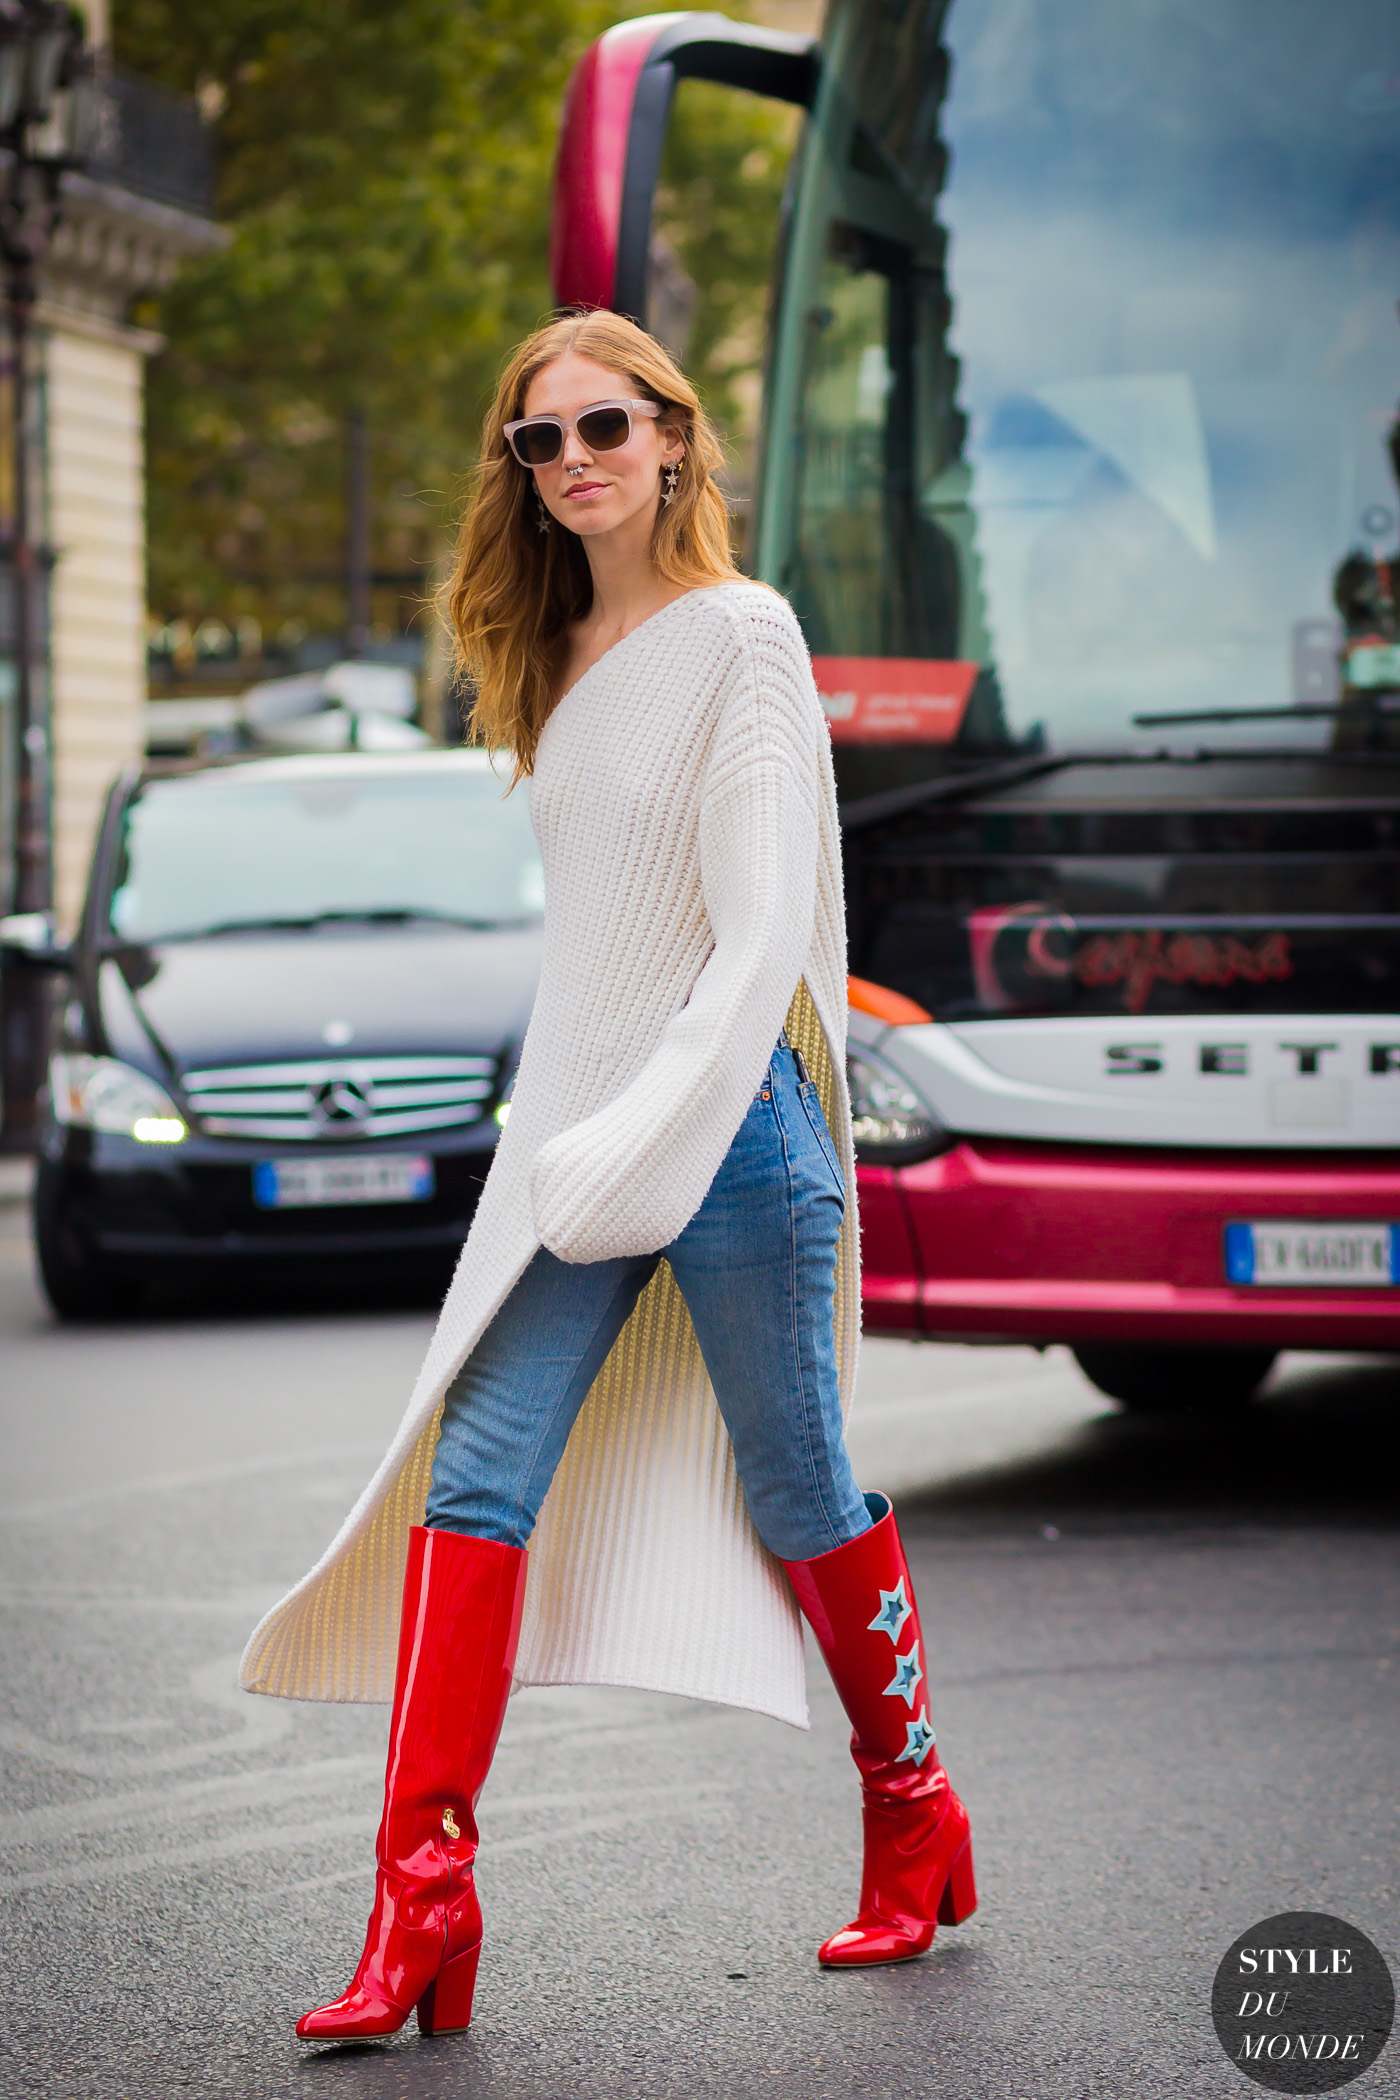 Chiara Ferragni The Blonde Salad Street Style Street Fashion Streetsnaps by STYLEDUMONDE Street Style Fashion Photography